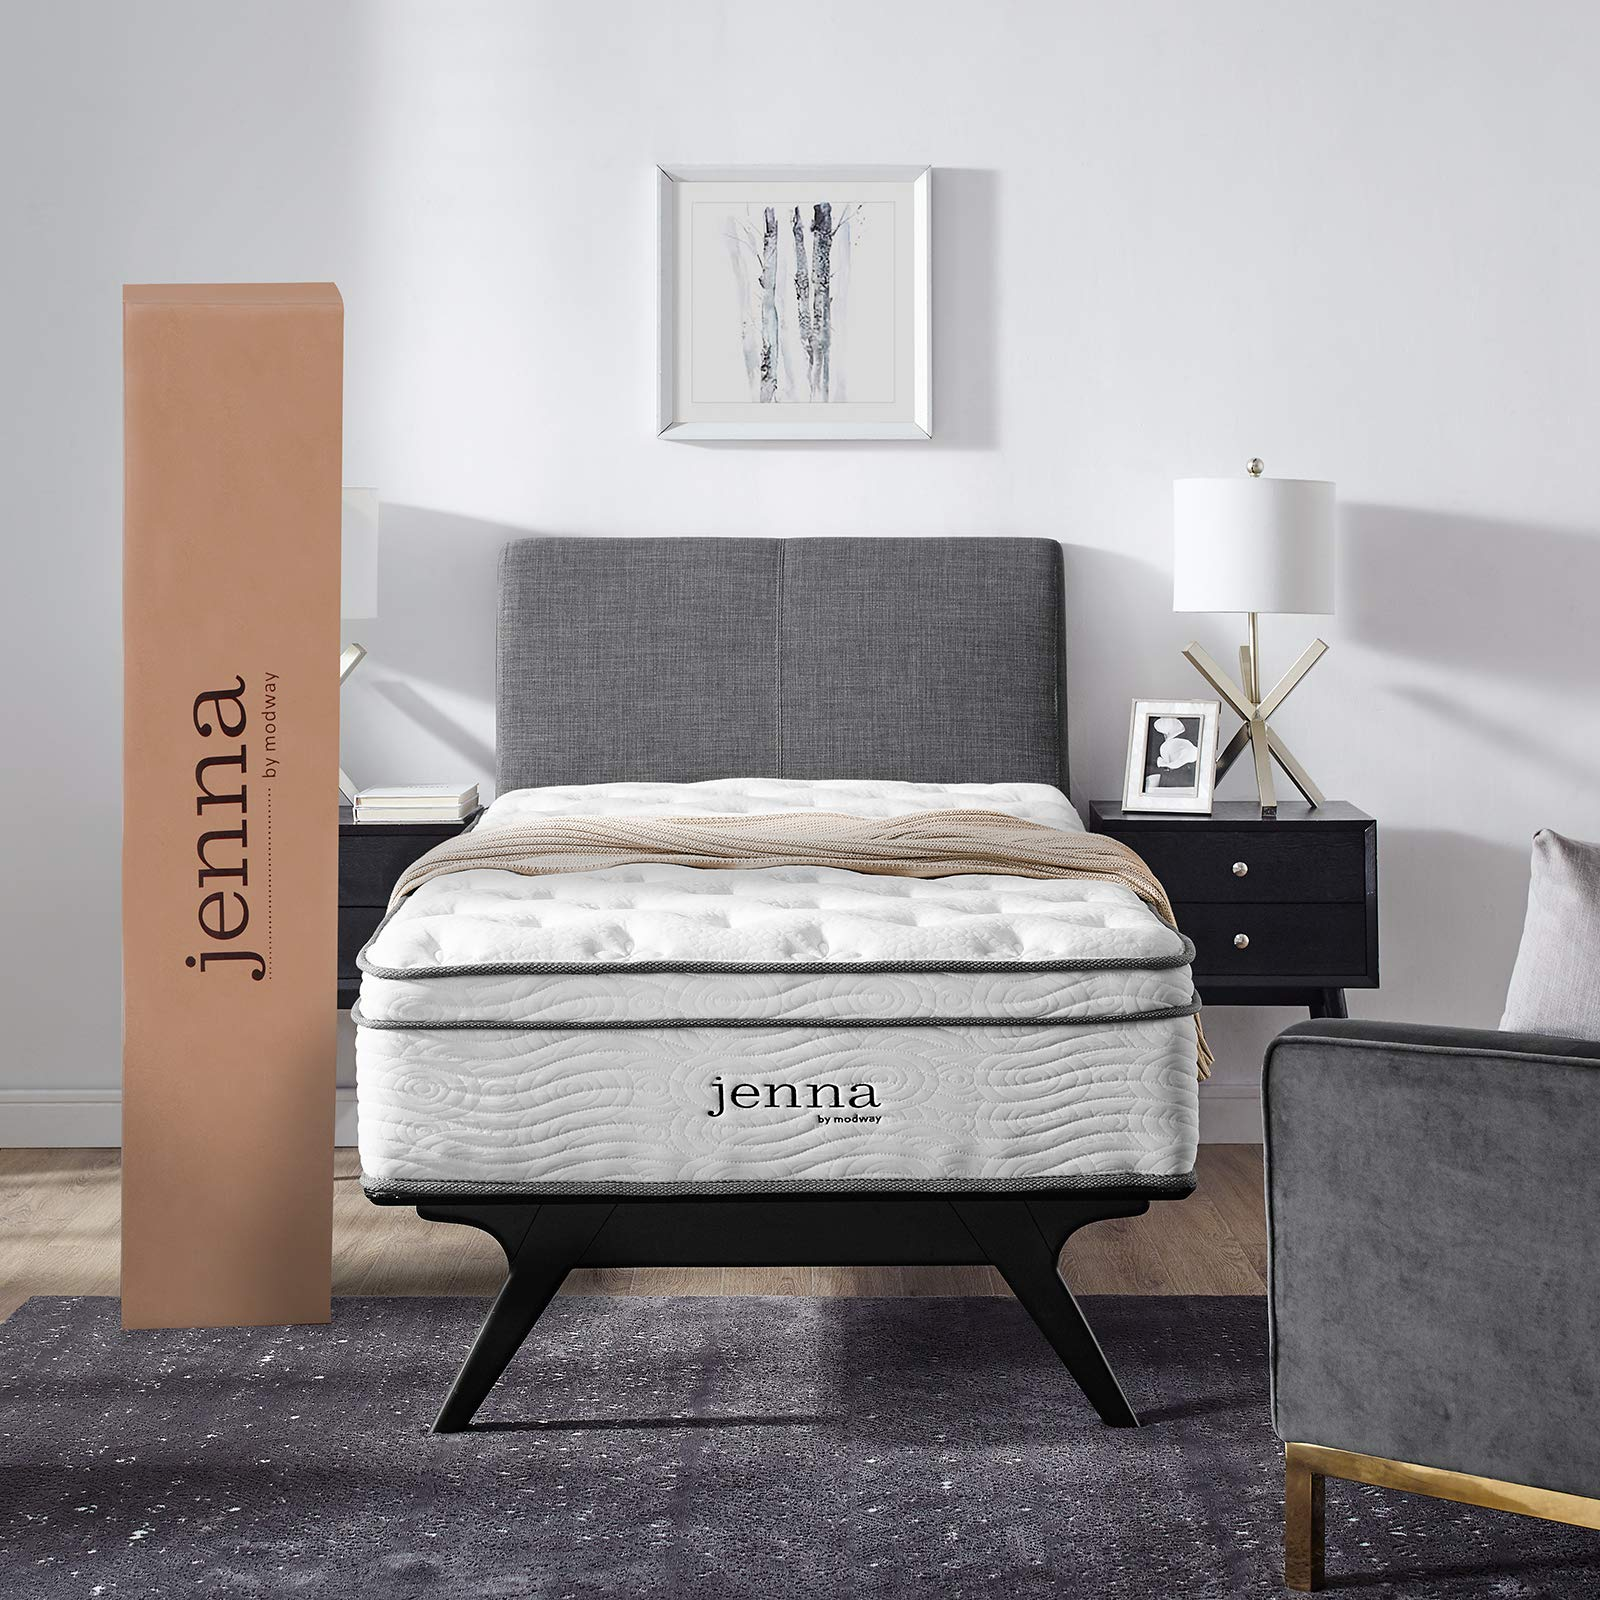 Modway Jenna 10'' Twin Innerspring Mattress - Top Quality Quilted Pillow Top - Individually Encased Pocket Coils - 10-Year Warranty by Modway